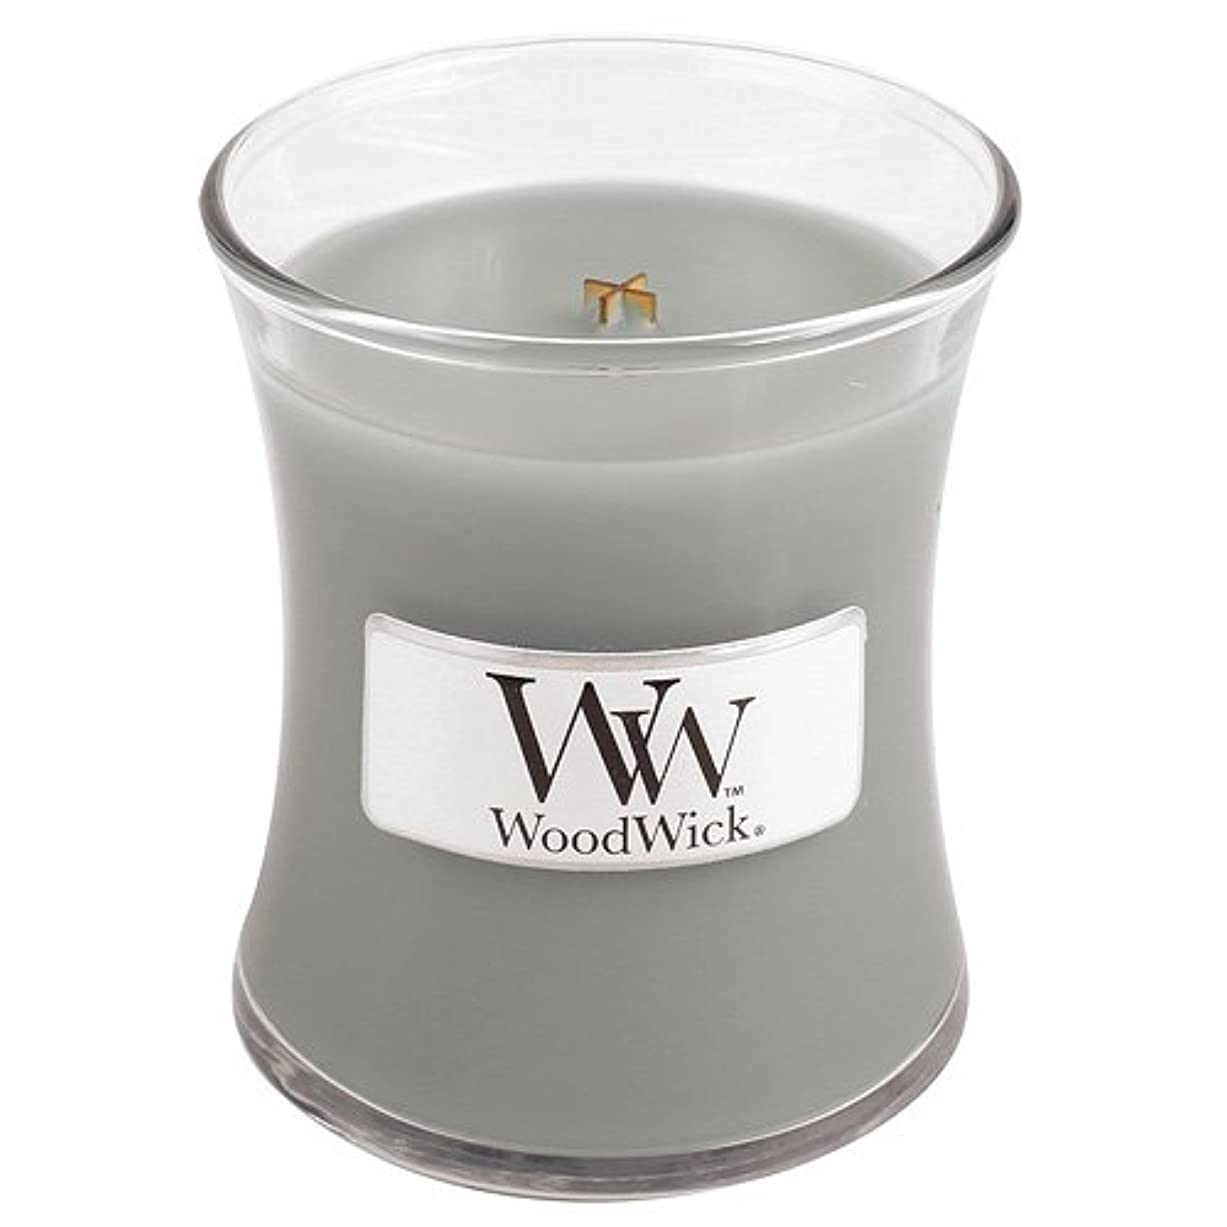 拍手無駄な遺棄されたWoodwick Mini Fireside Candle 3.4oz by WoodWick